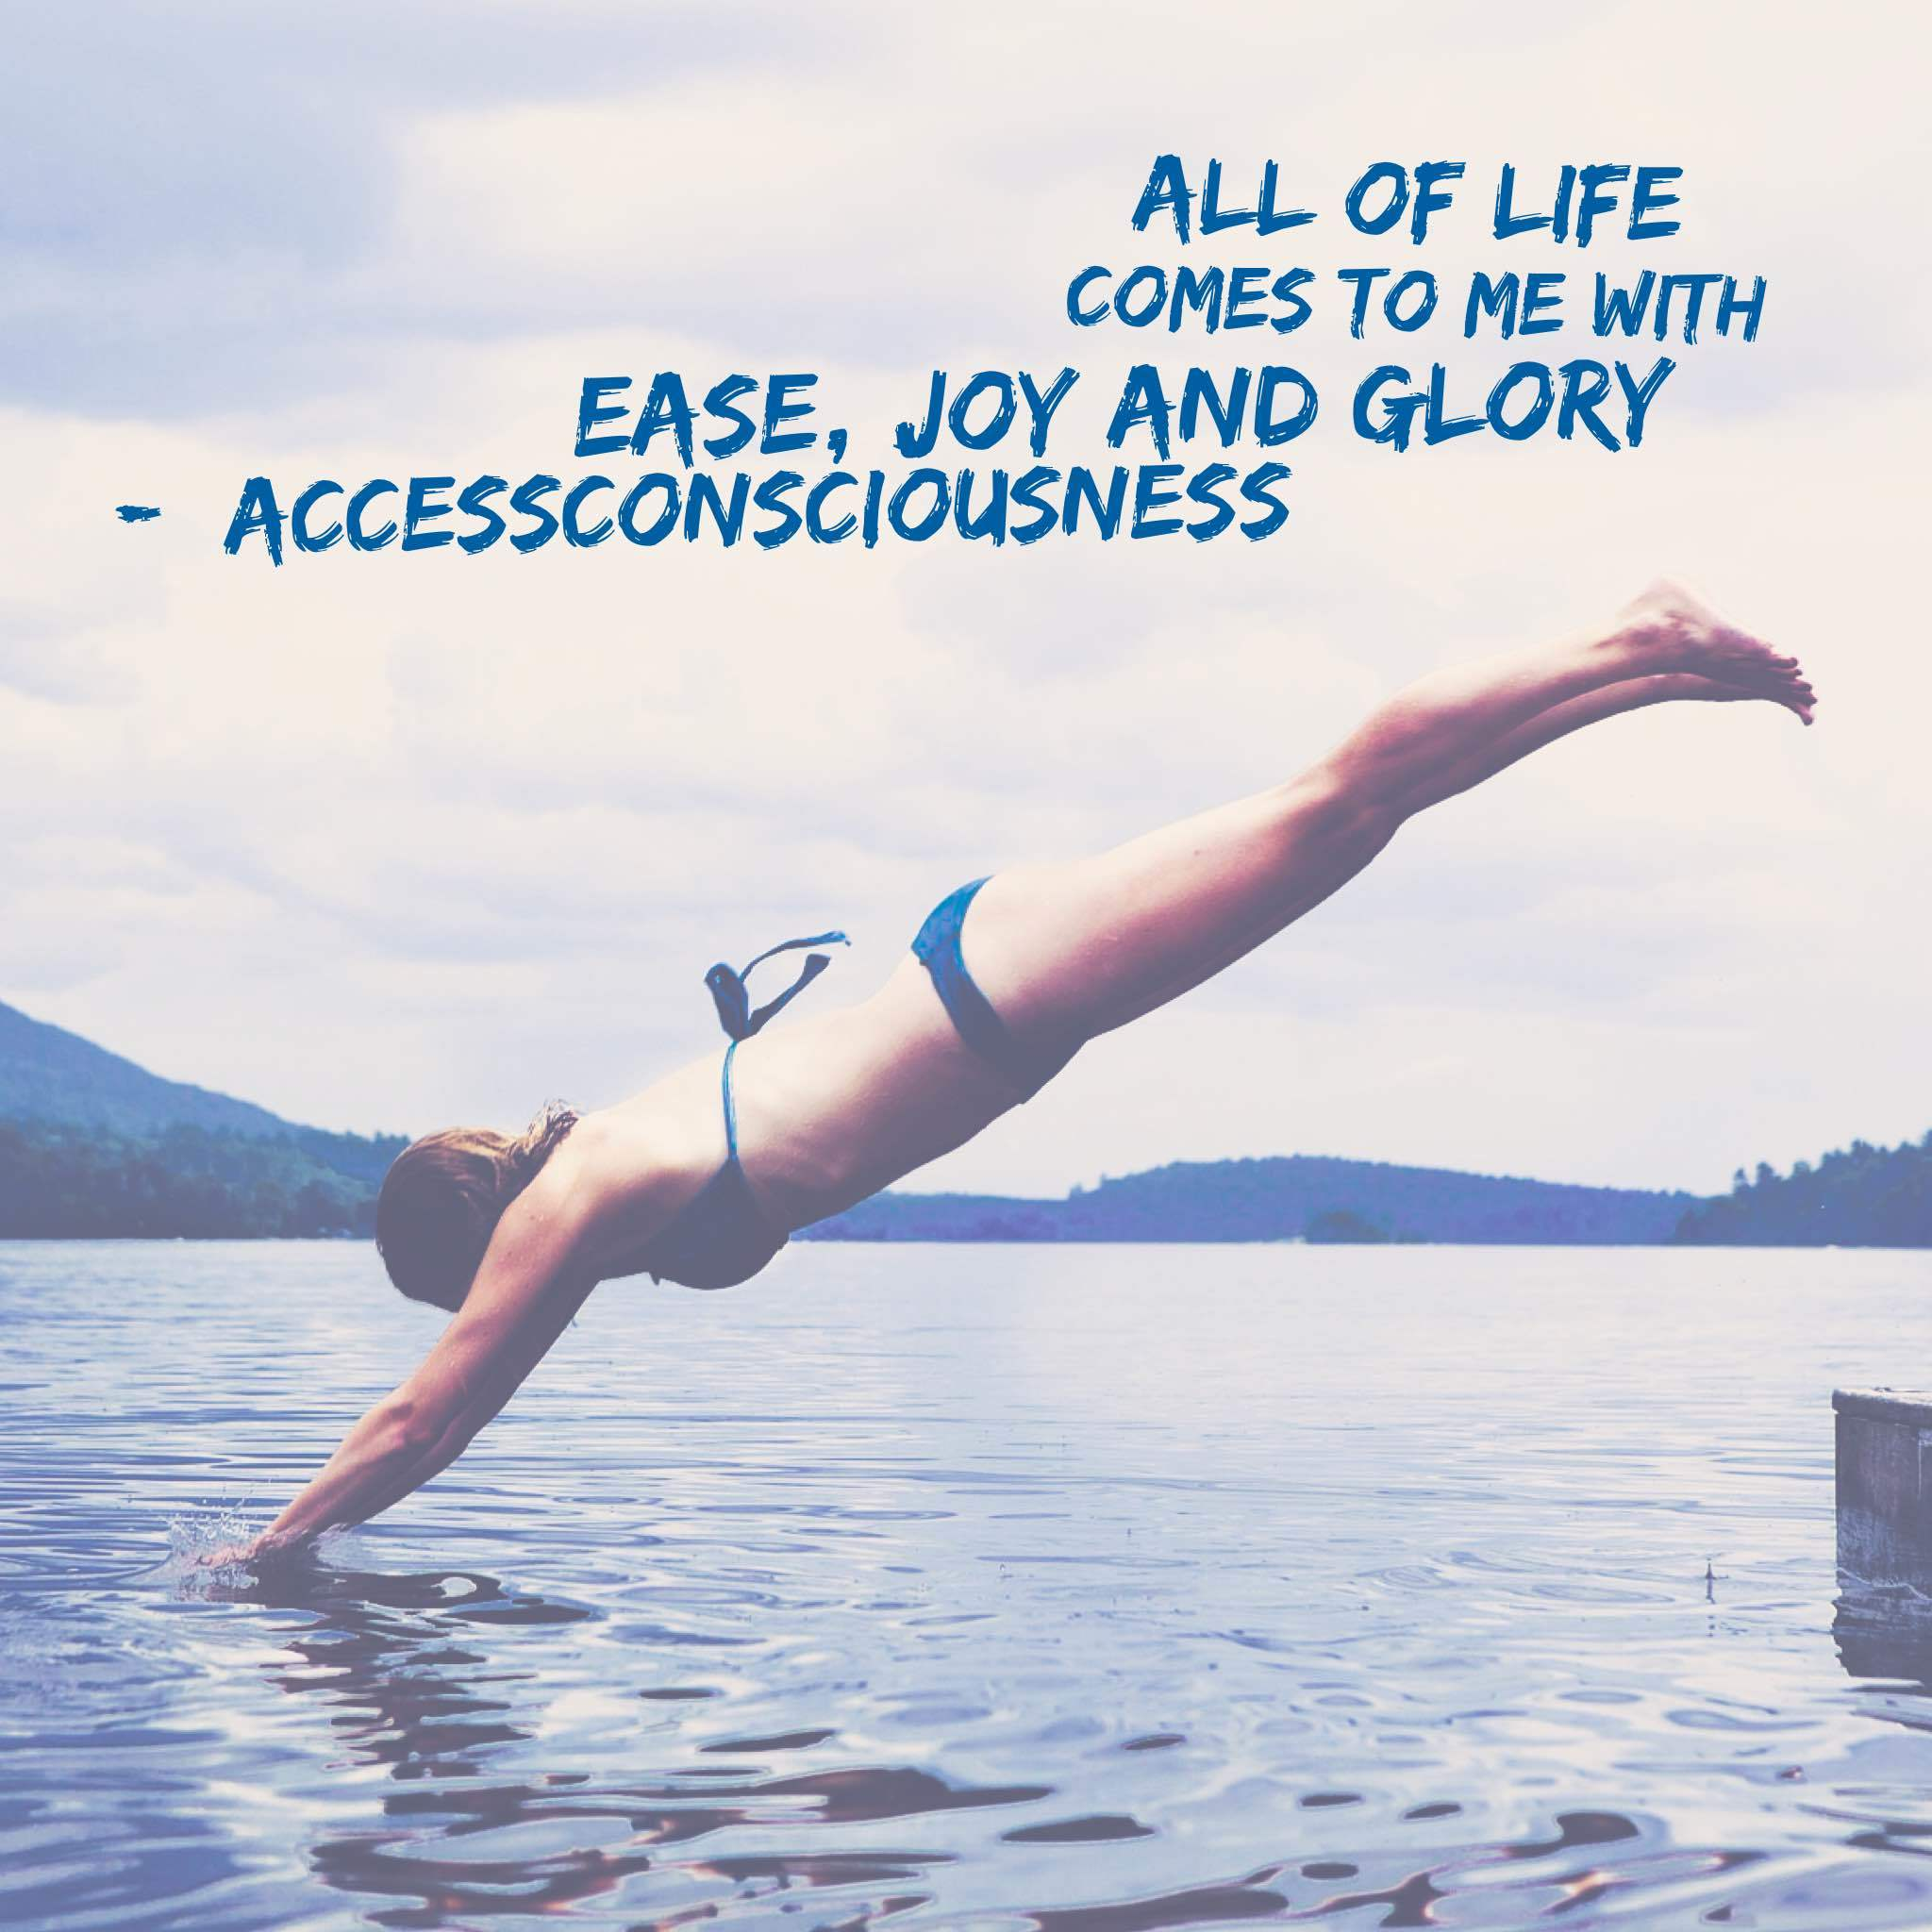 Ease joy and glory